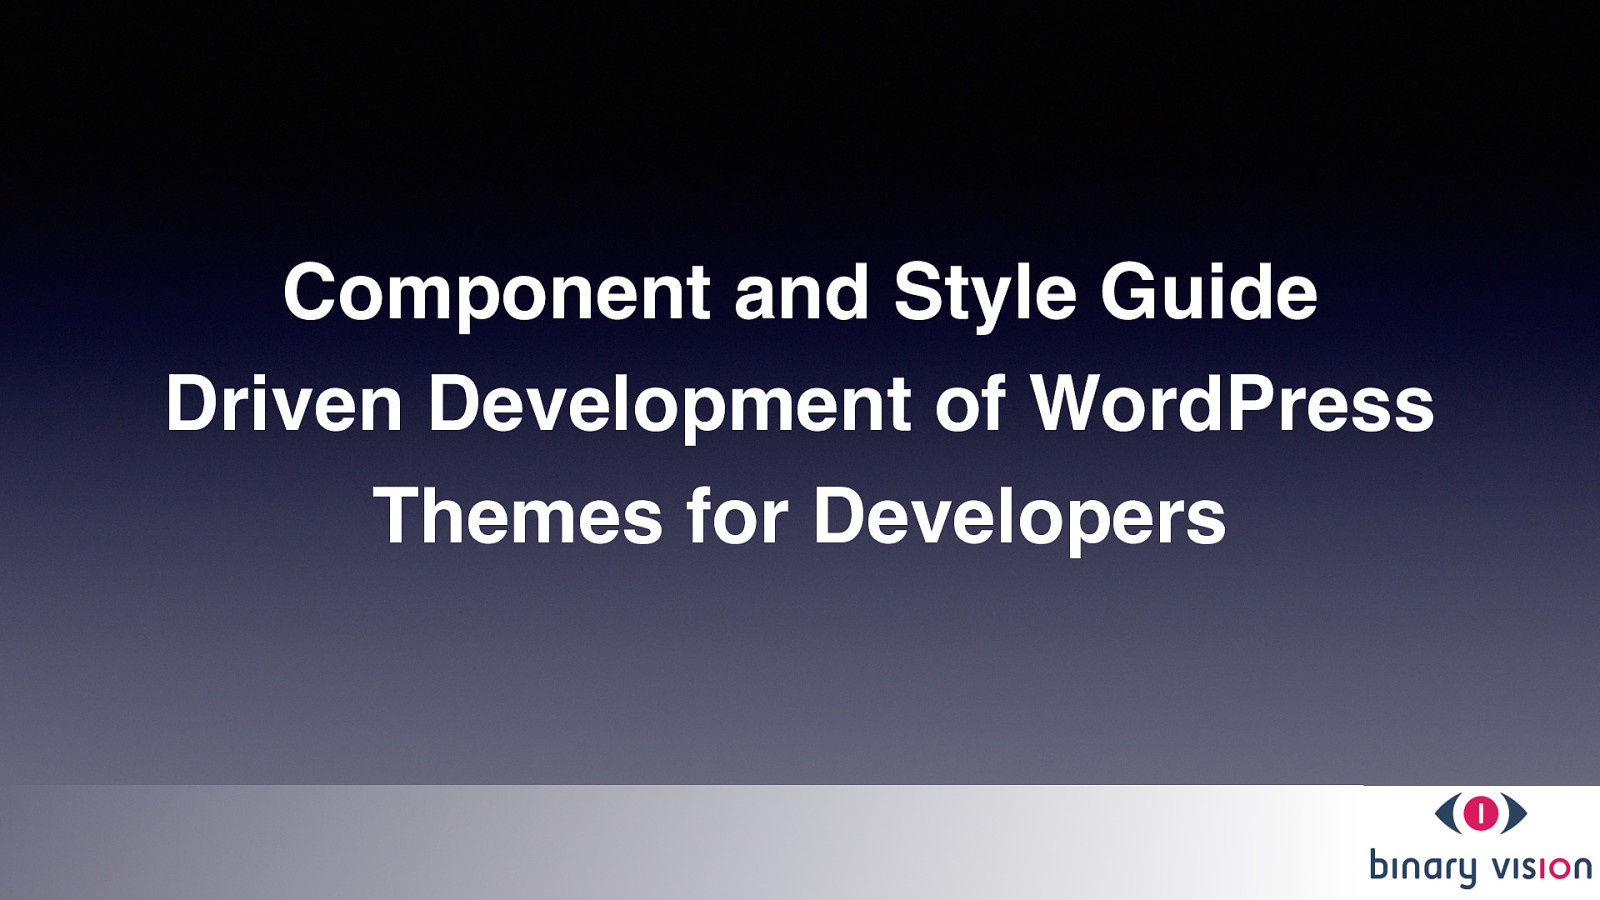 Component and Style Guide Driven Development of Wordpress Themes for Developers